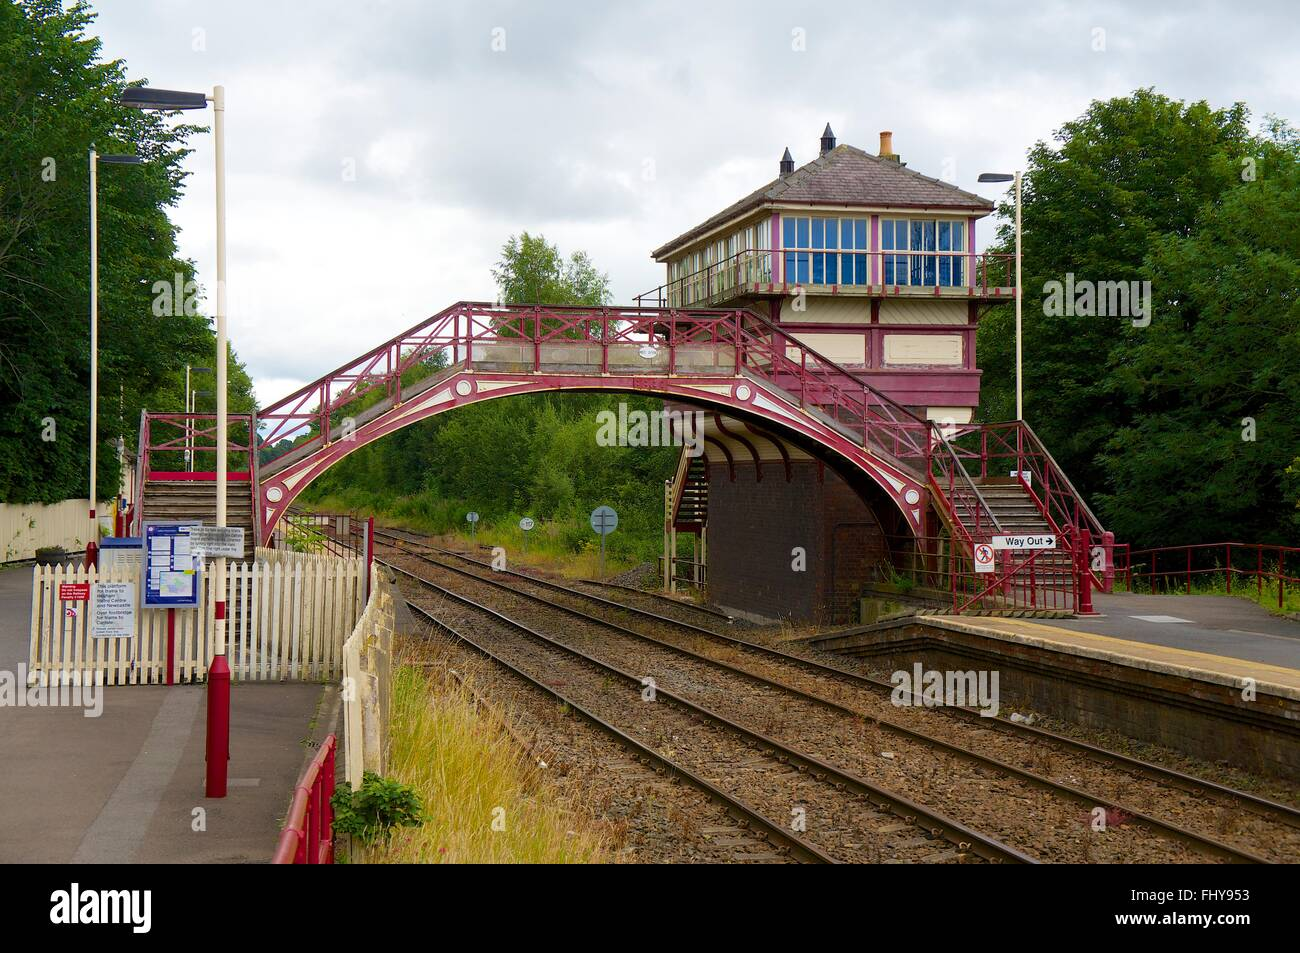 Haltwhistle Railway Station. Bridge and Signal box. Haltwhistle, Tyne Valley Line, Northumberland, England, United - Stock Image